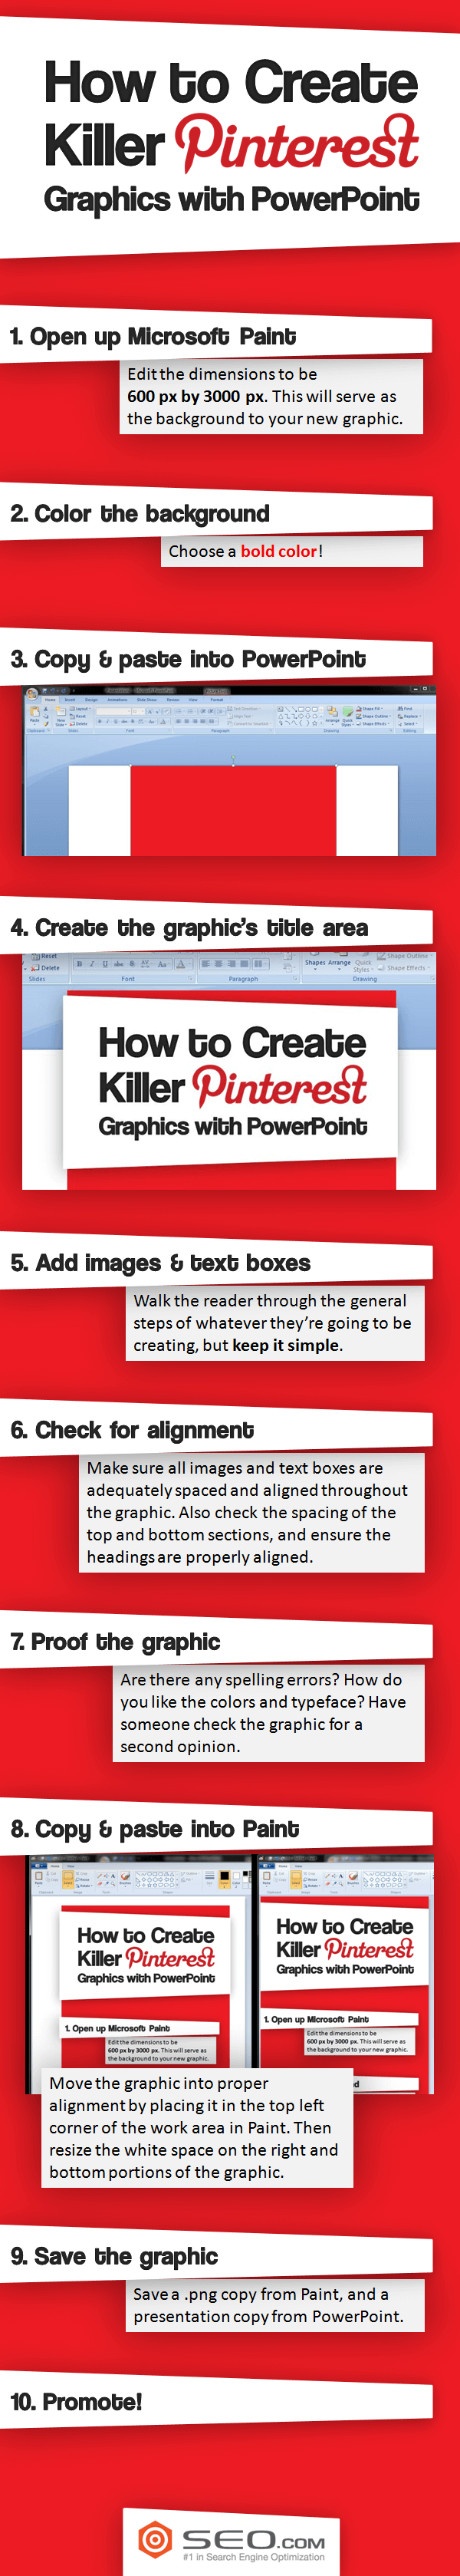 KILLER PINTEREST GRAPHICS WITH POWERPOINT